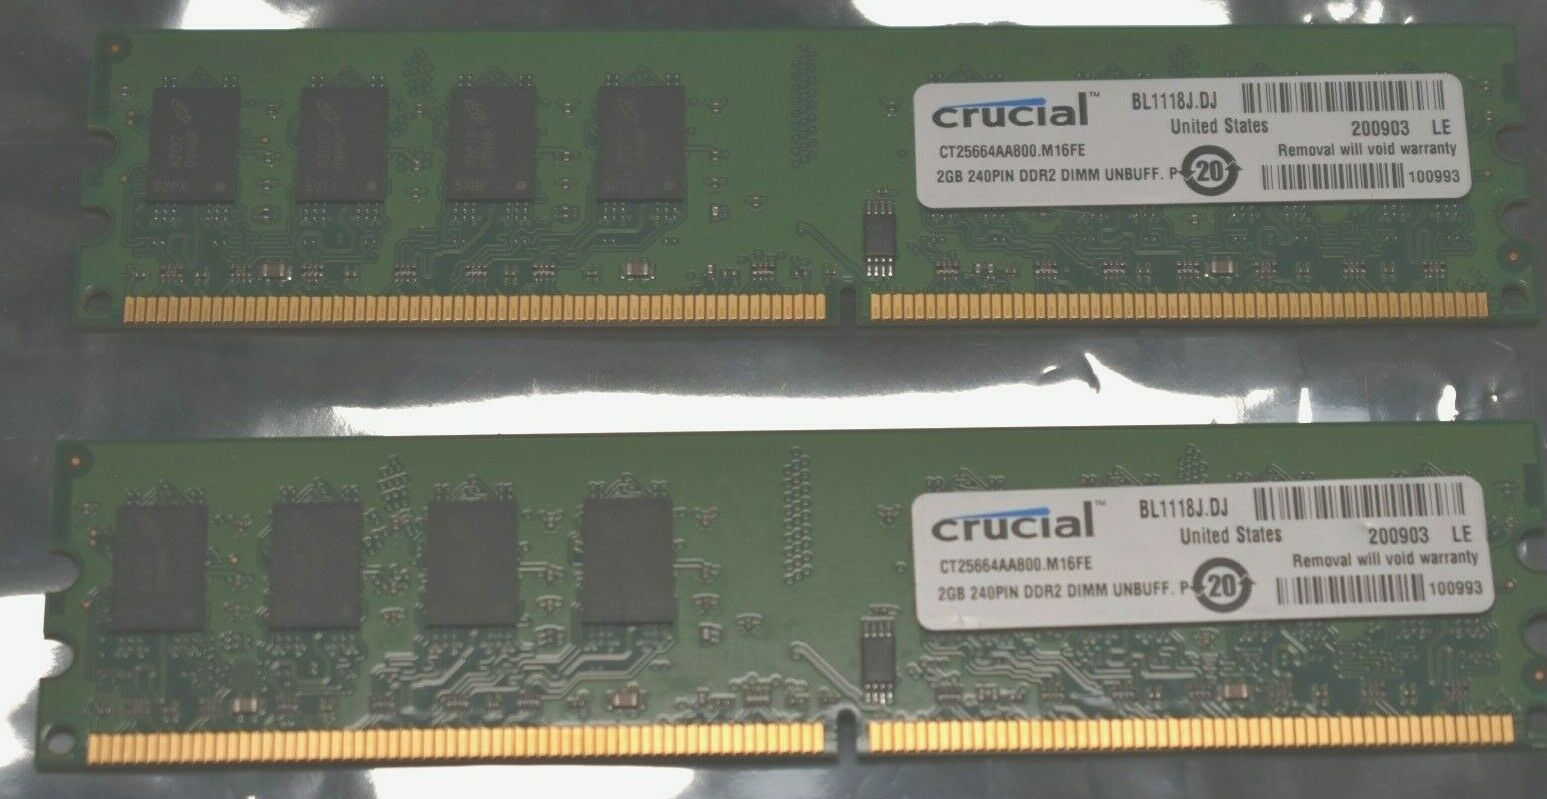 PARTS-QUICK BRAND 2GB Memory for MSI Motherboard G41TM-E43 DDR2 PC2-6400 800MHz DIMM NON-ECC RAM UPGRADE